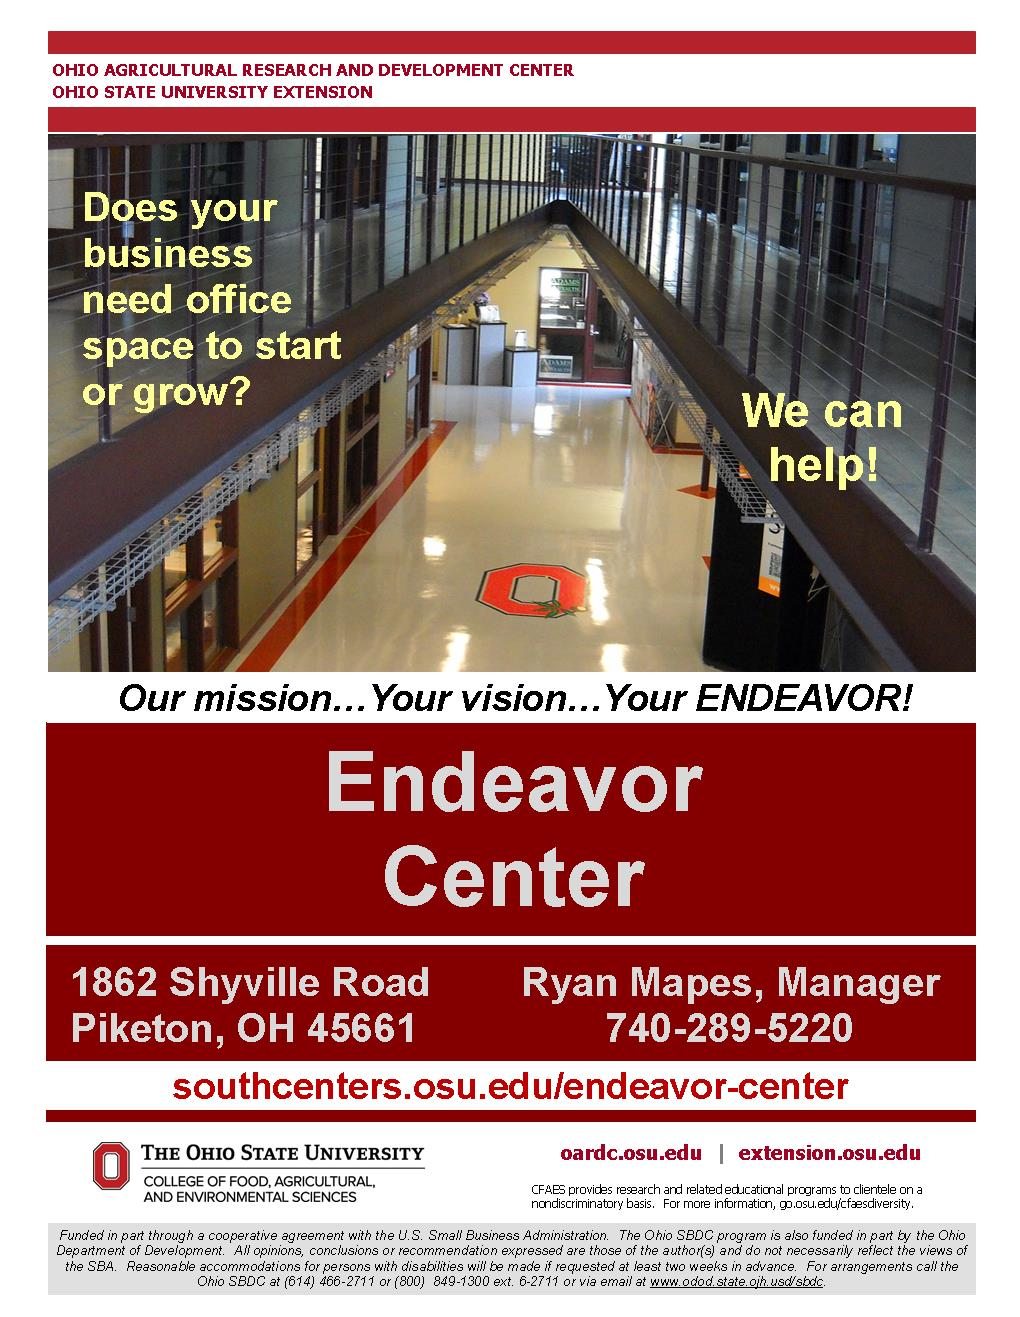 OSU Endeavor Center